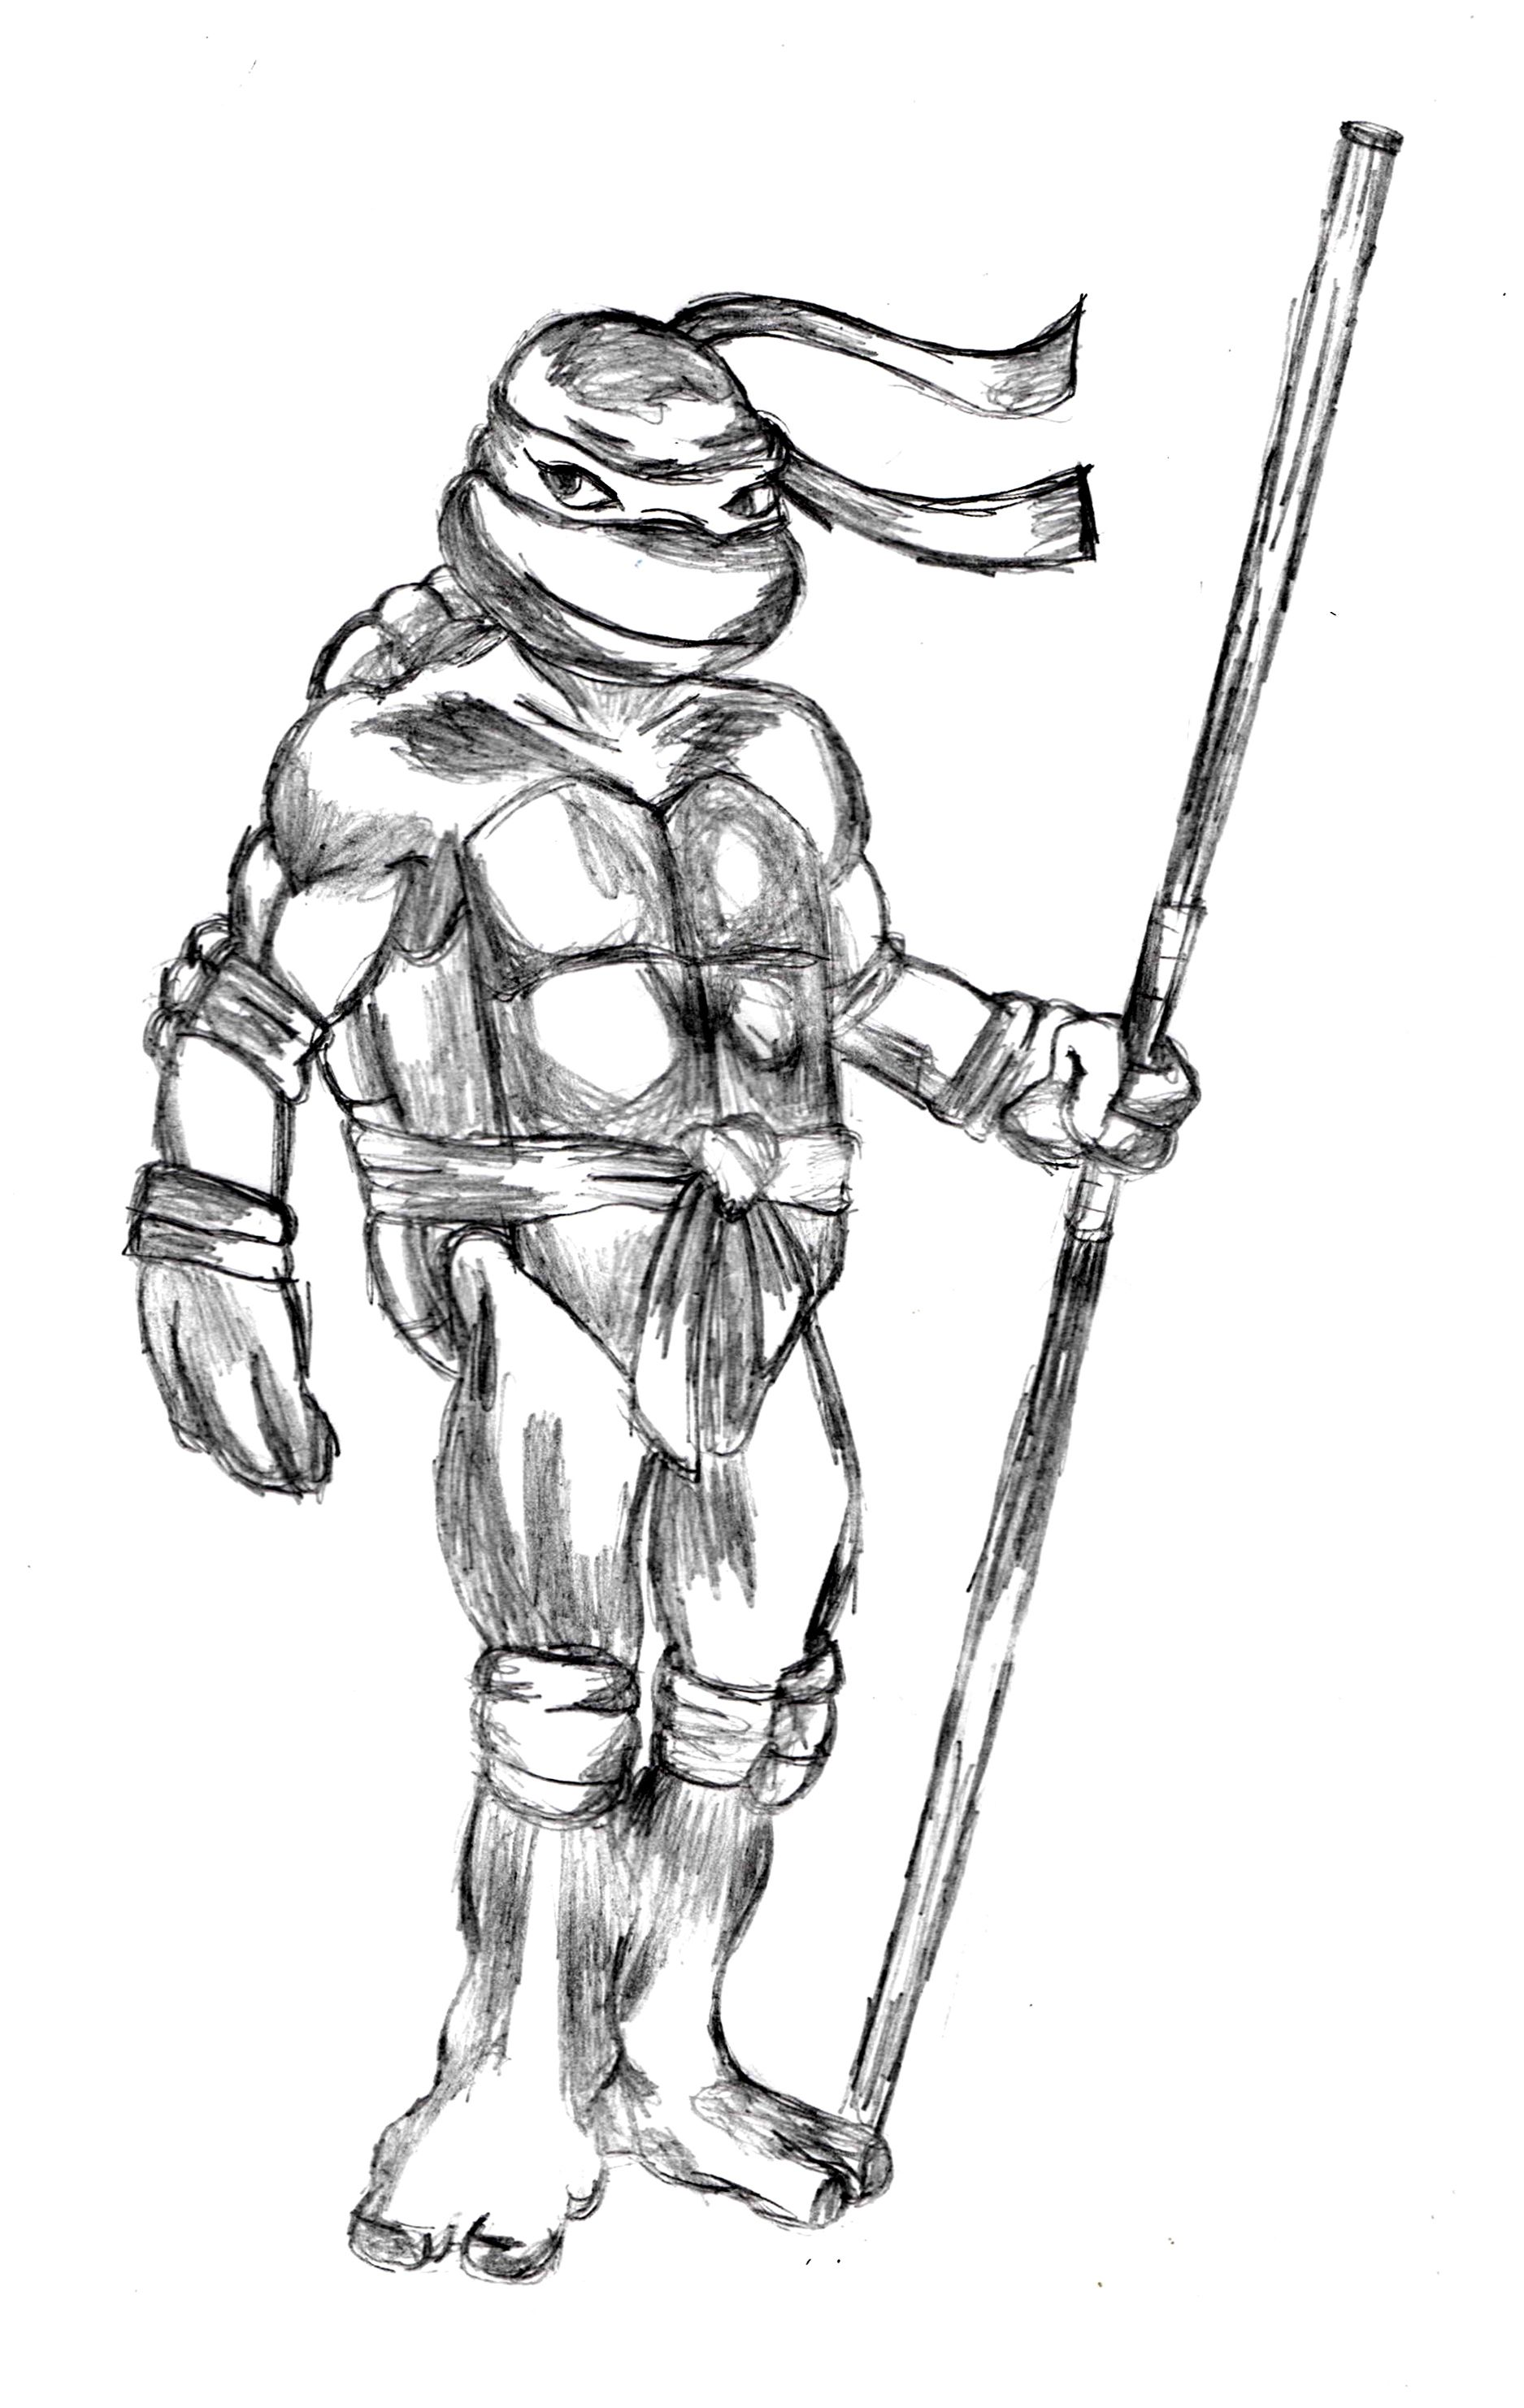 donatello sketch httpdrawingmanualscommanualhow to ninja turtle